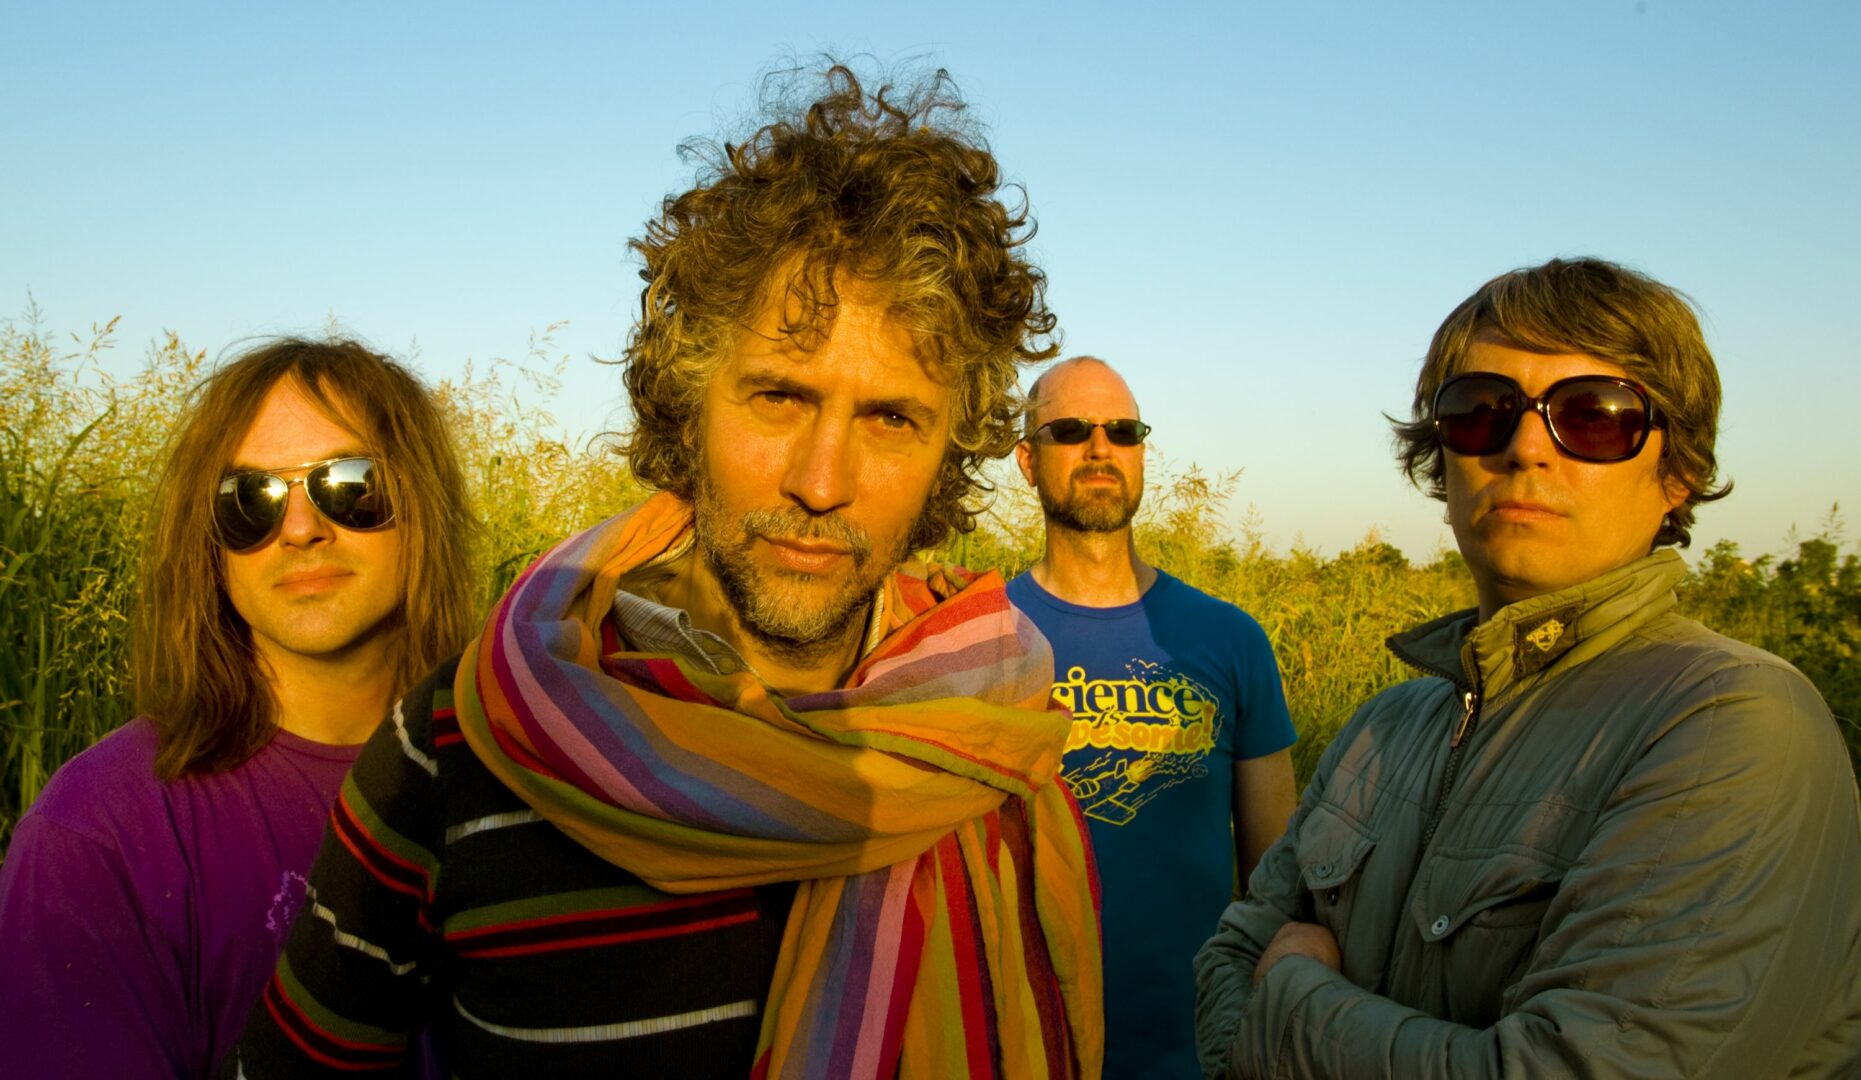 The Flaming Lips / The Black Keys Announce Mini-Tour